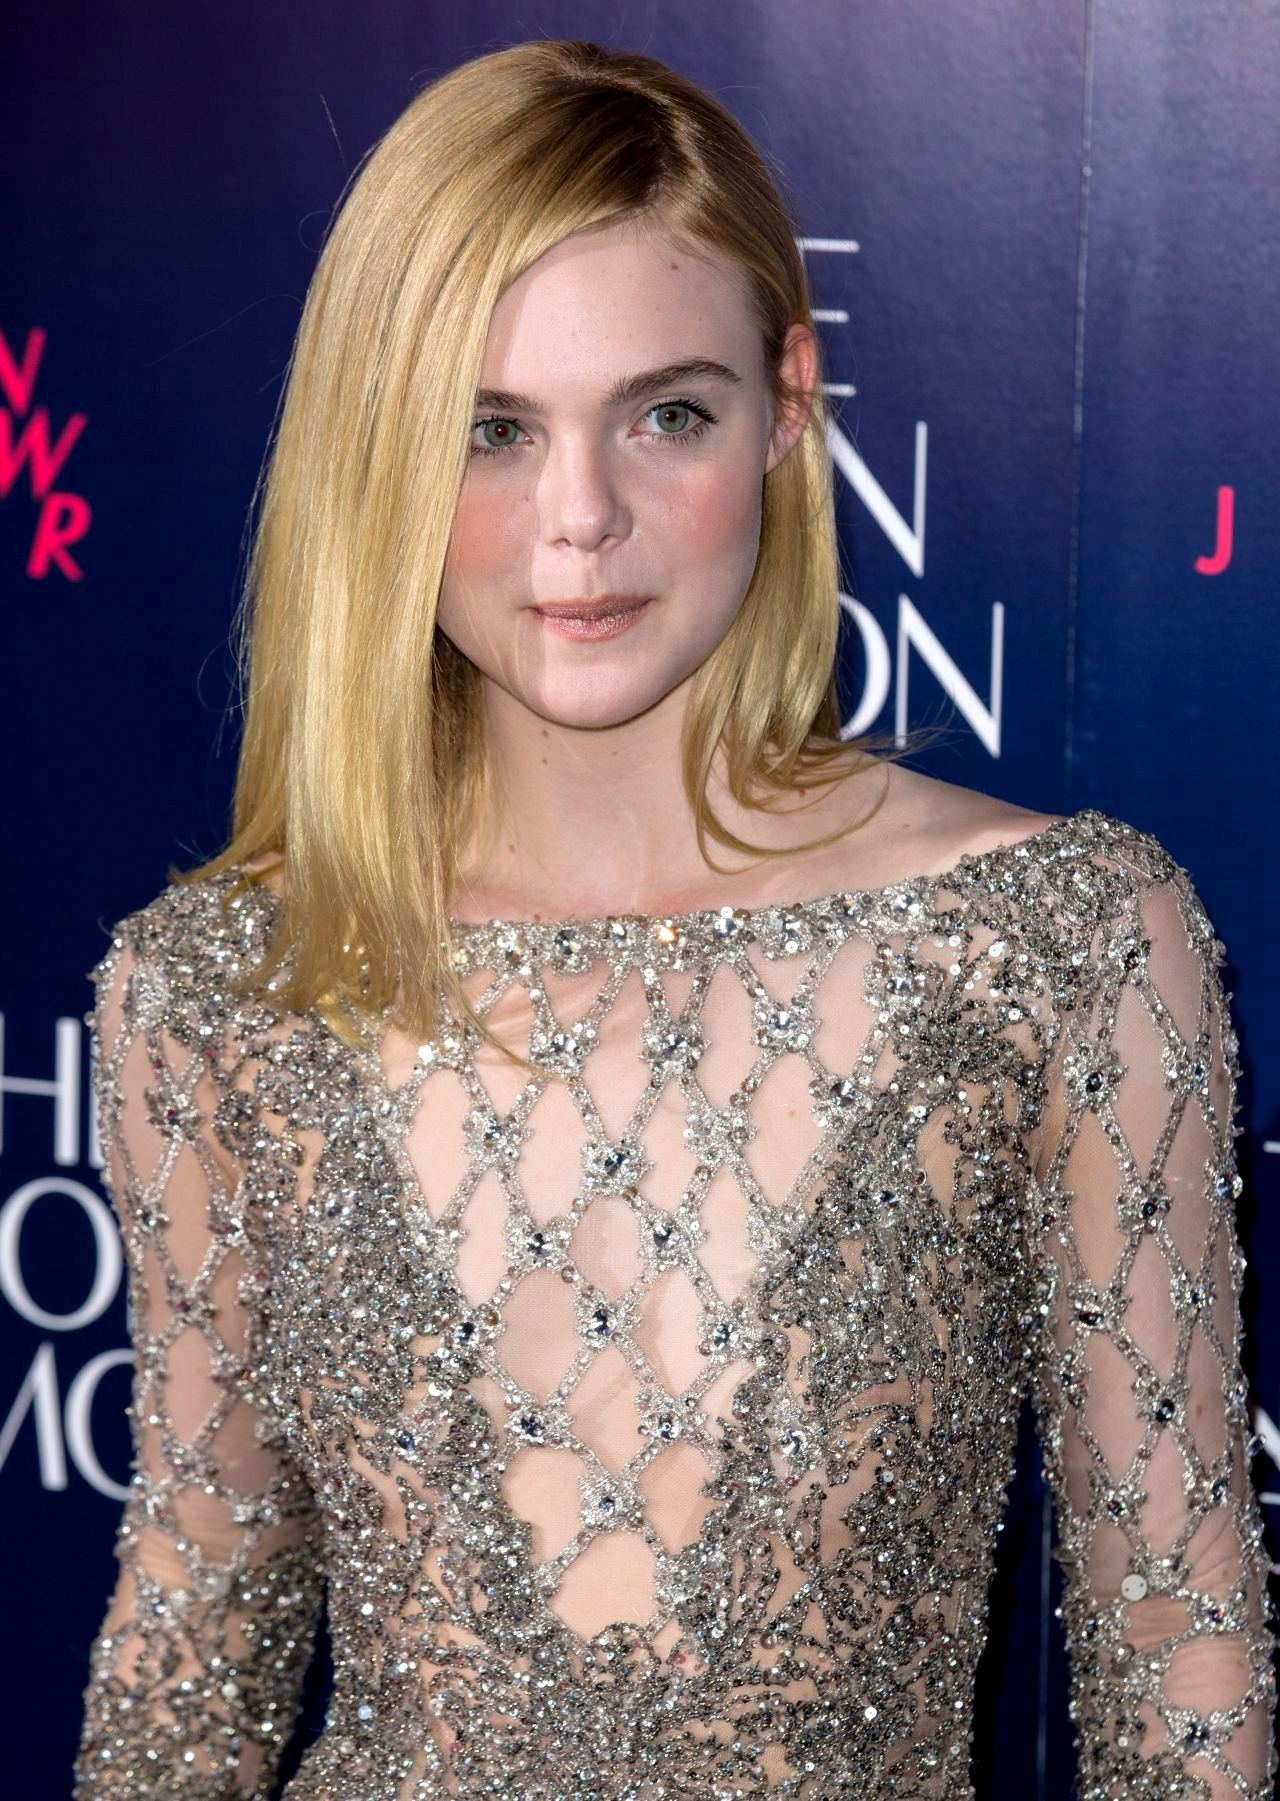 elle-fanning-the-neon-demon-premiere-in-london-uk-5-31-2016-3